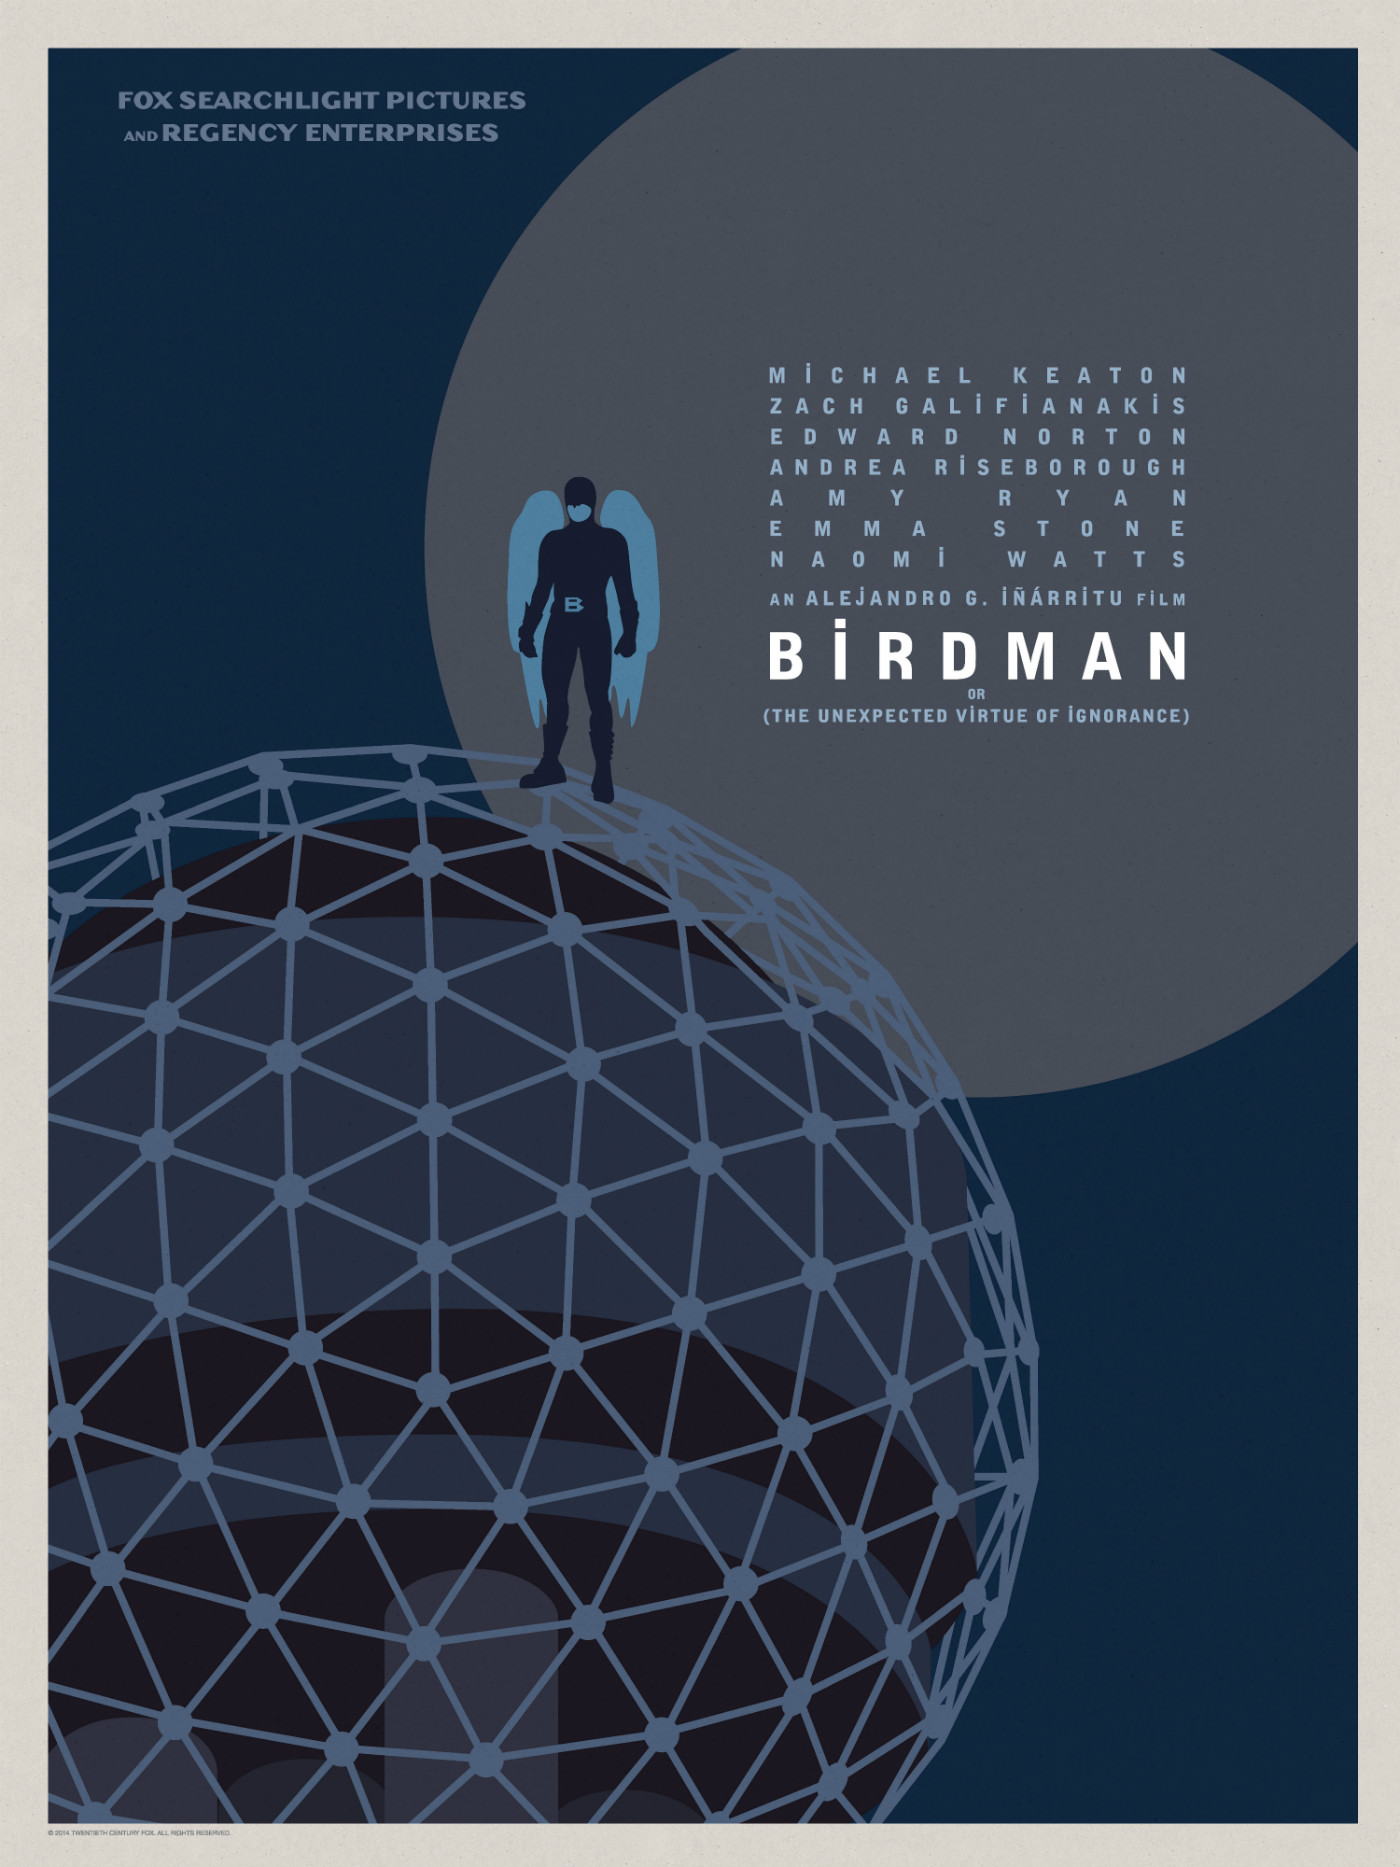 Birdman-Official Poster Minimalist XLG-13OUTUBRO2014-03